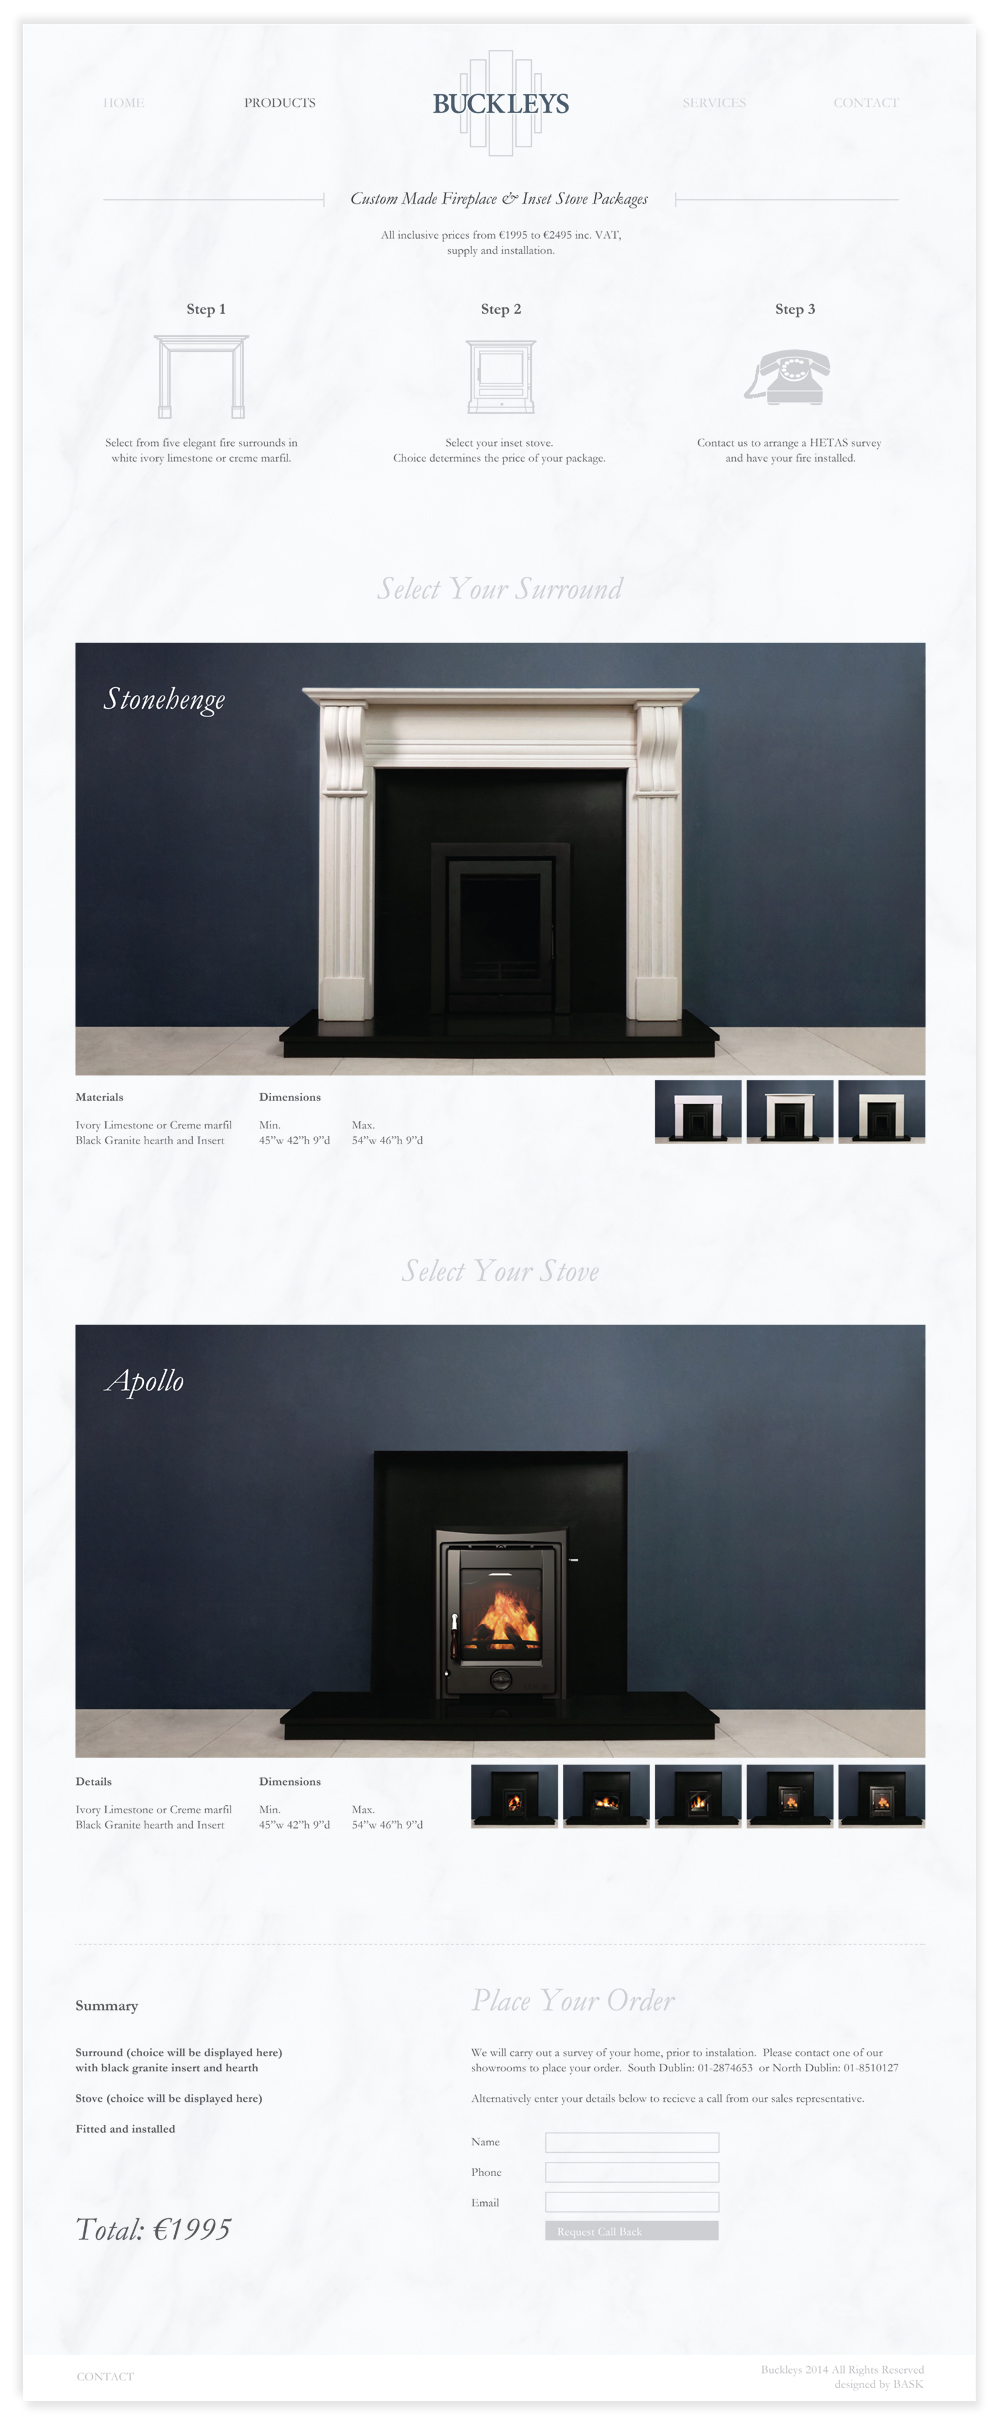 Buckleys website Fireplace Pacgages Page